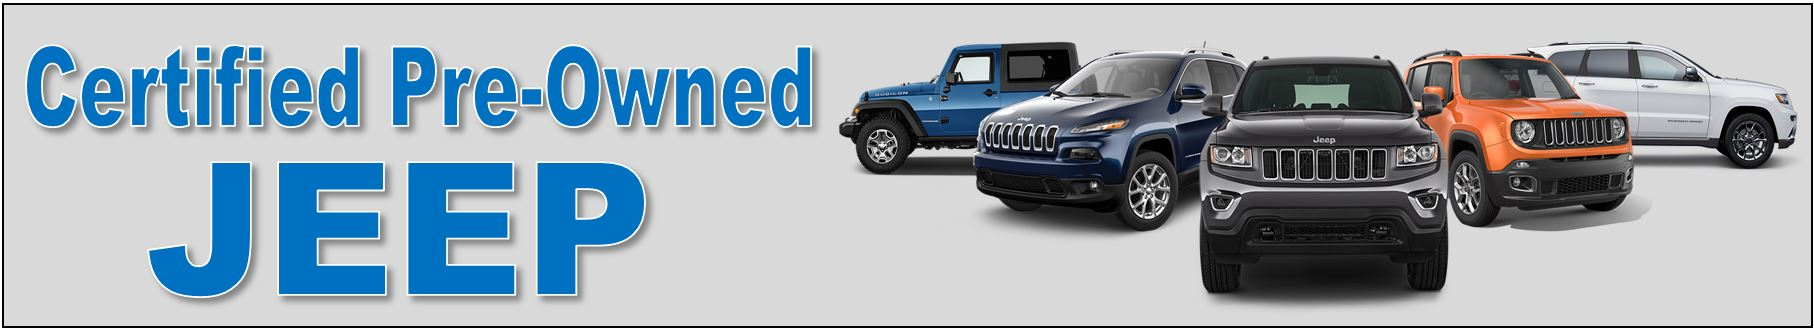 Certified-Preowned-Jeep-Louisville-KY